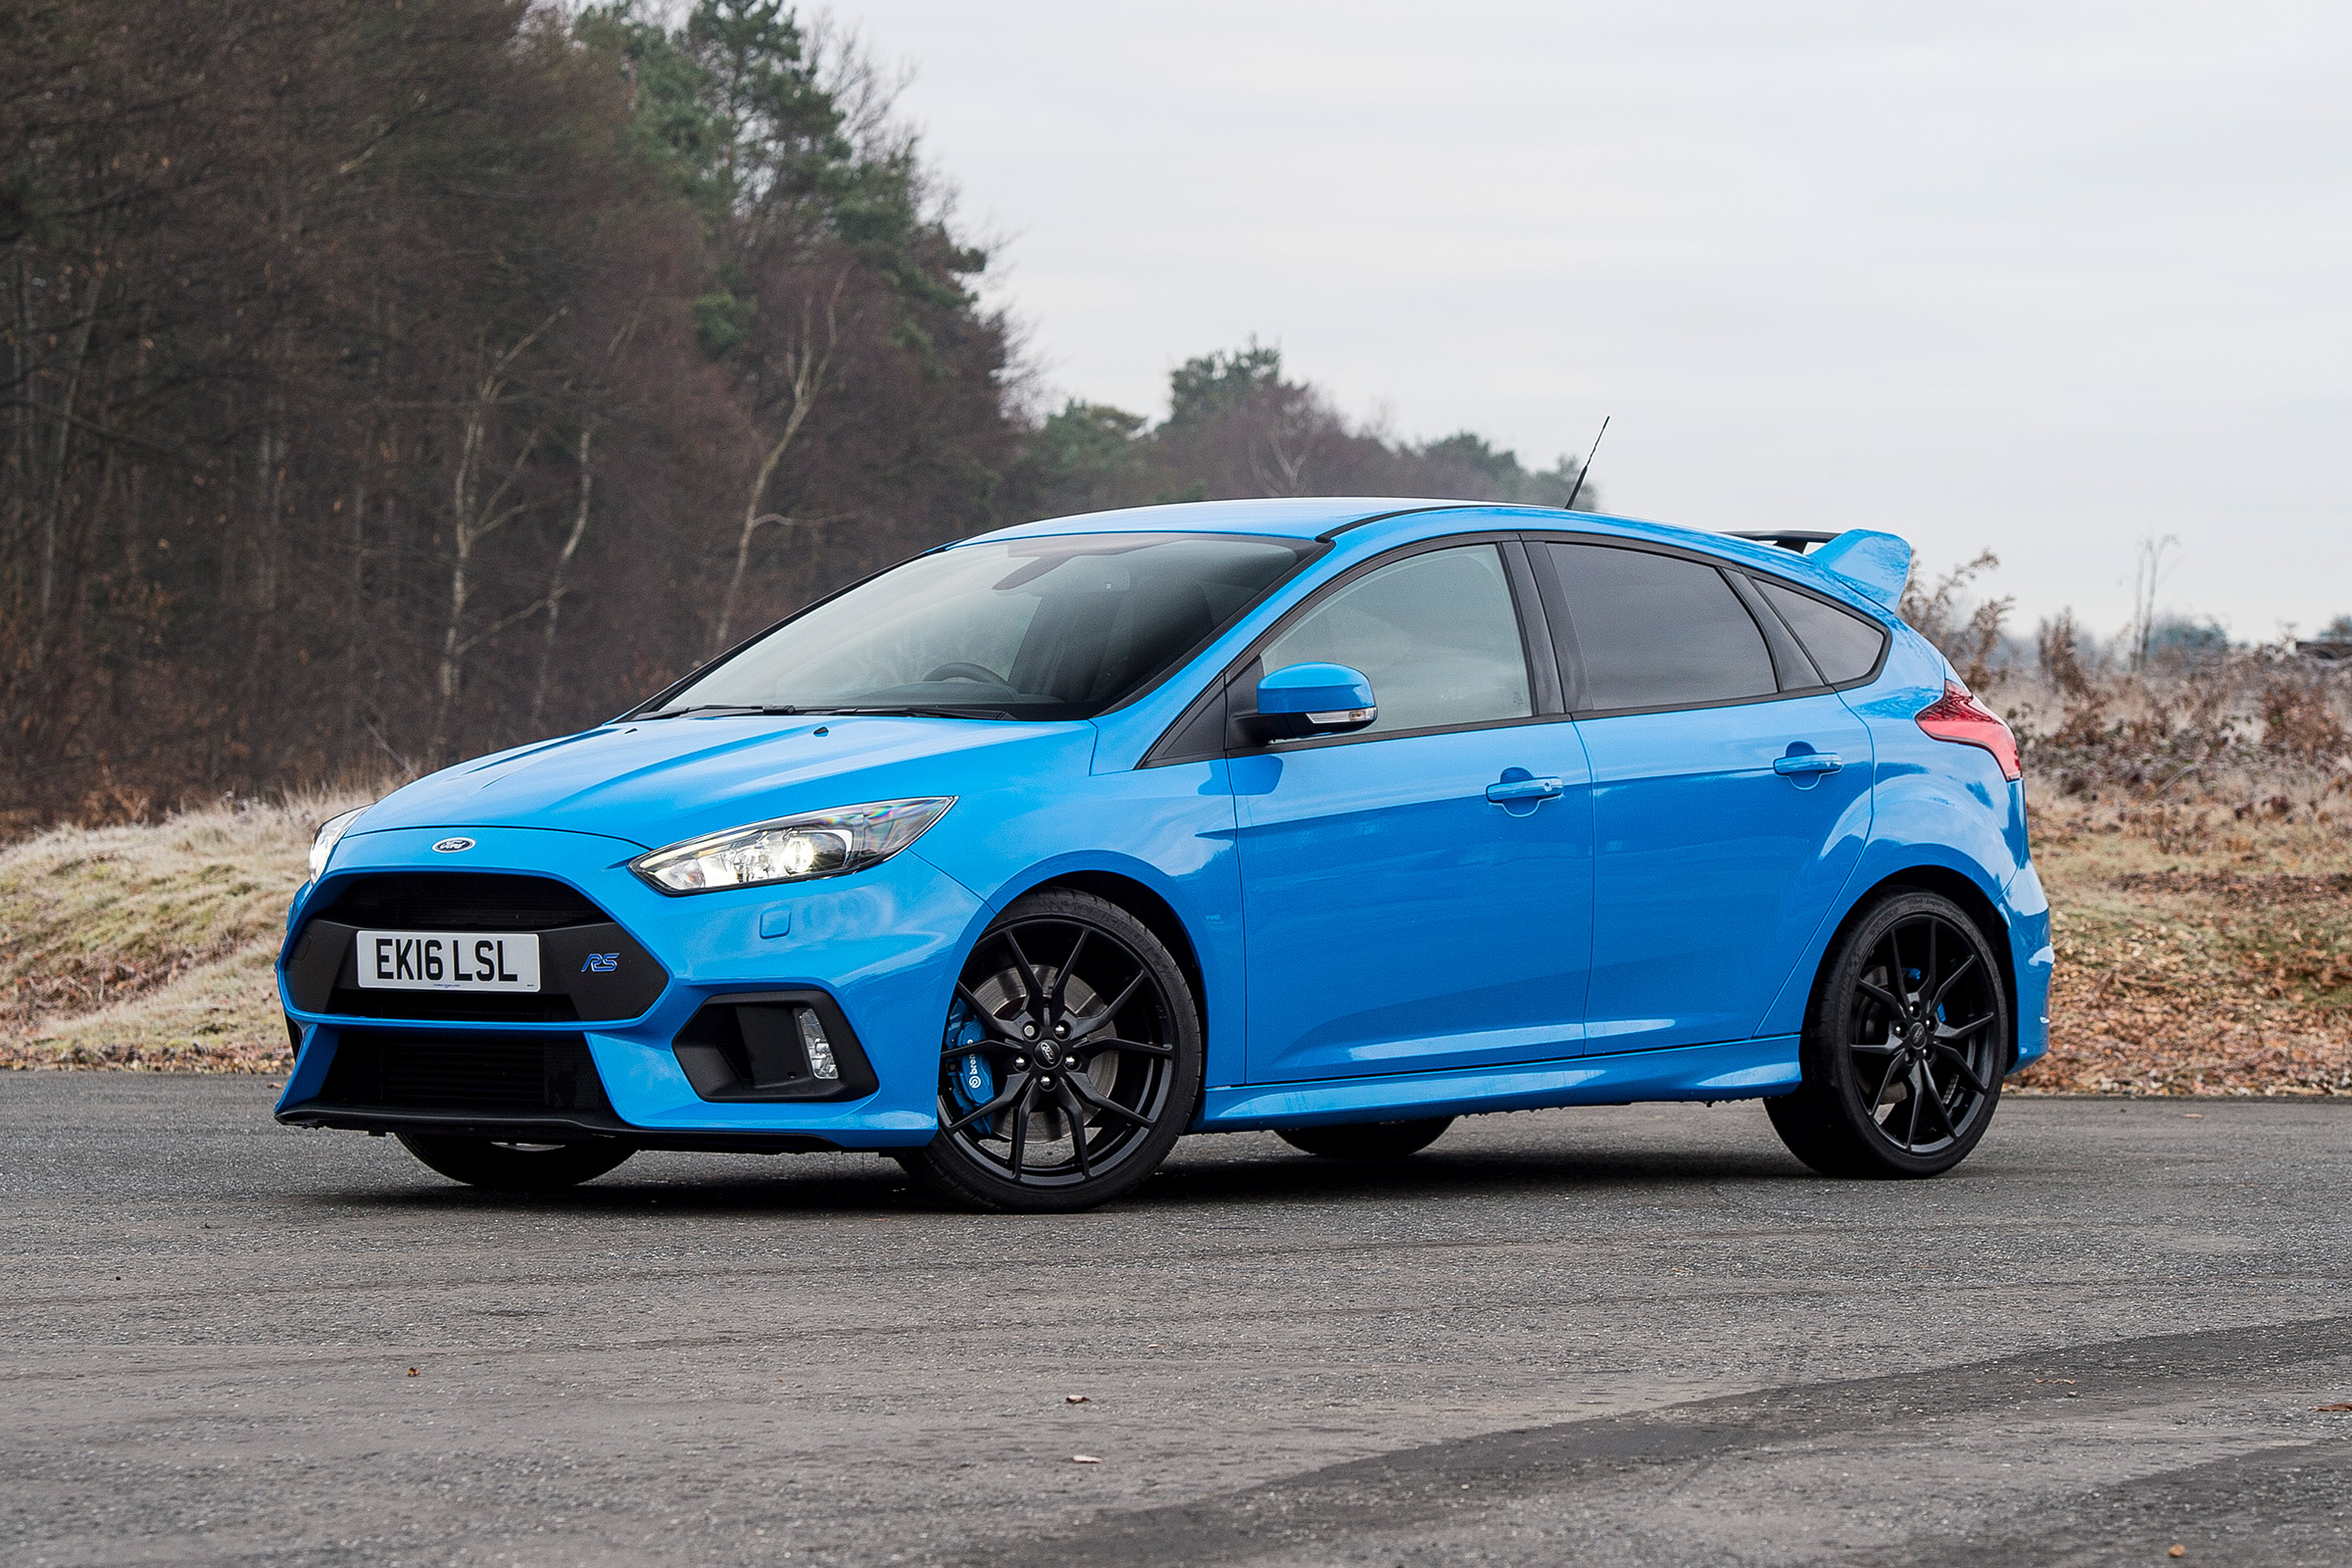 2017 Ford Focus RS Blue Exterior Front And Side (View 1 of 23)